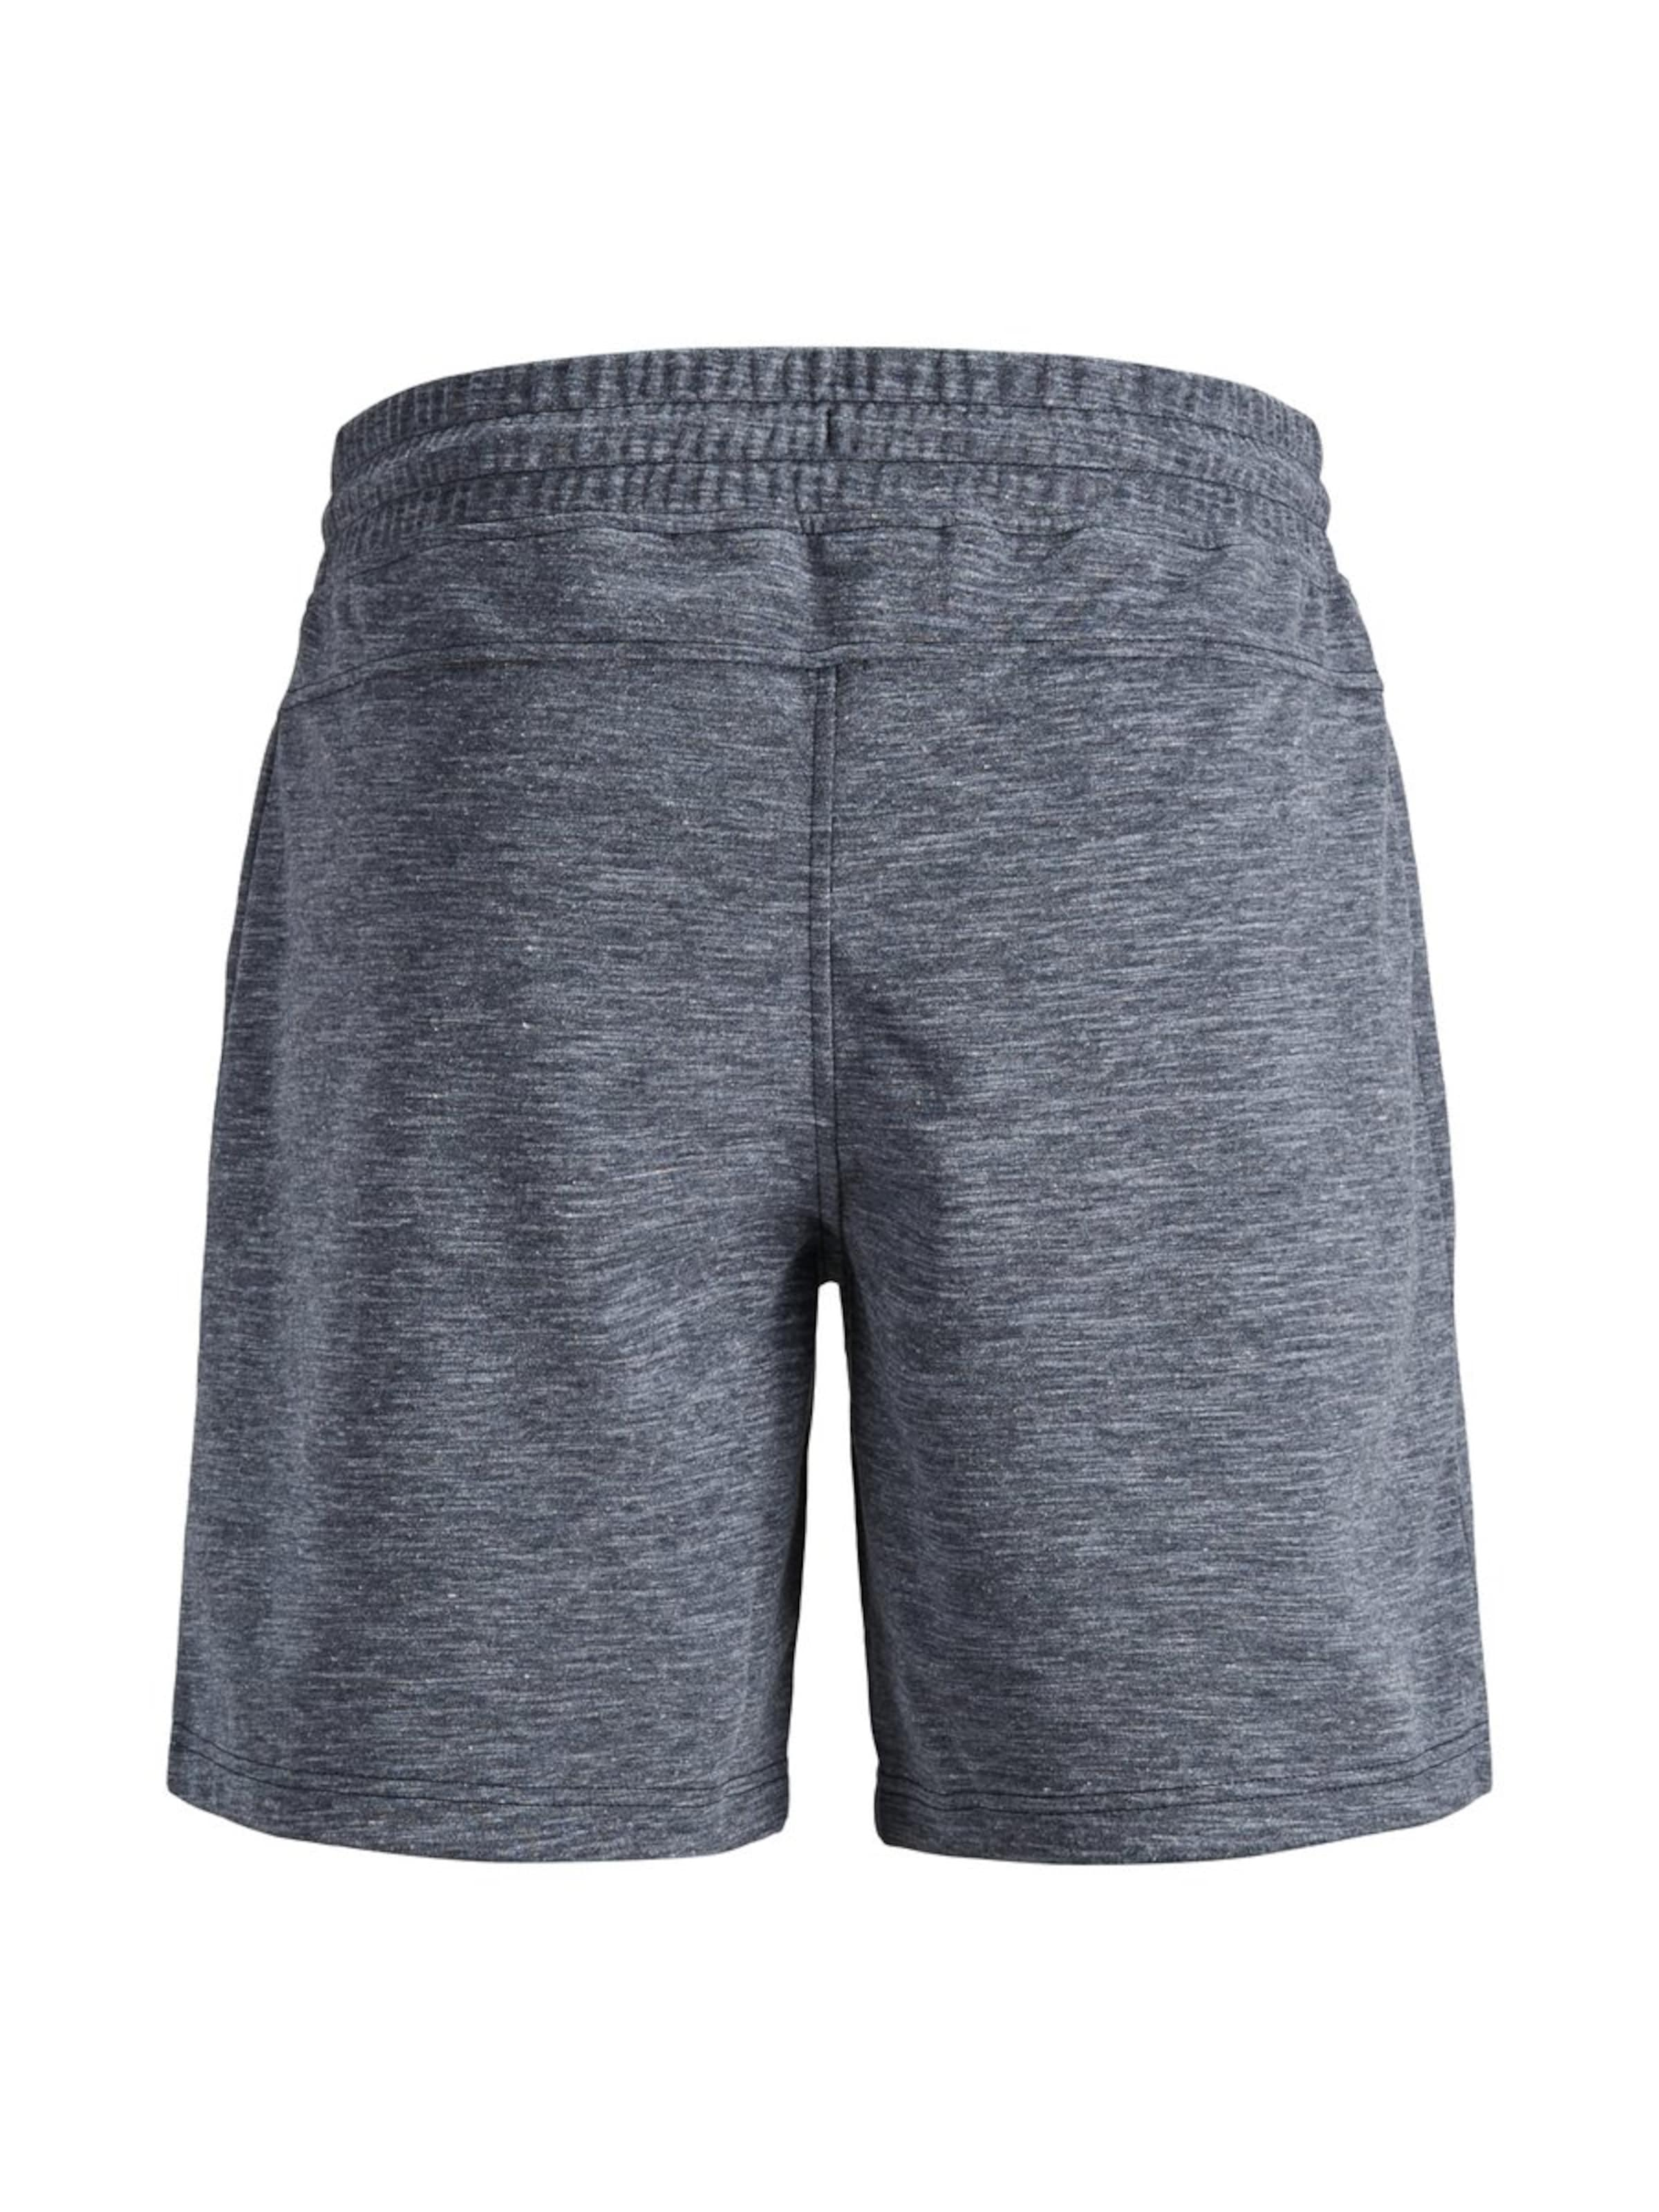 Bleu En Jones gris Jackamp; Pantalon wk80OnP